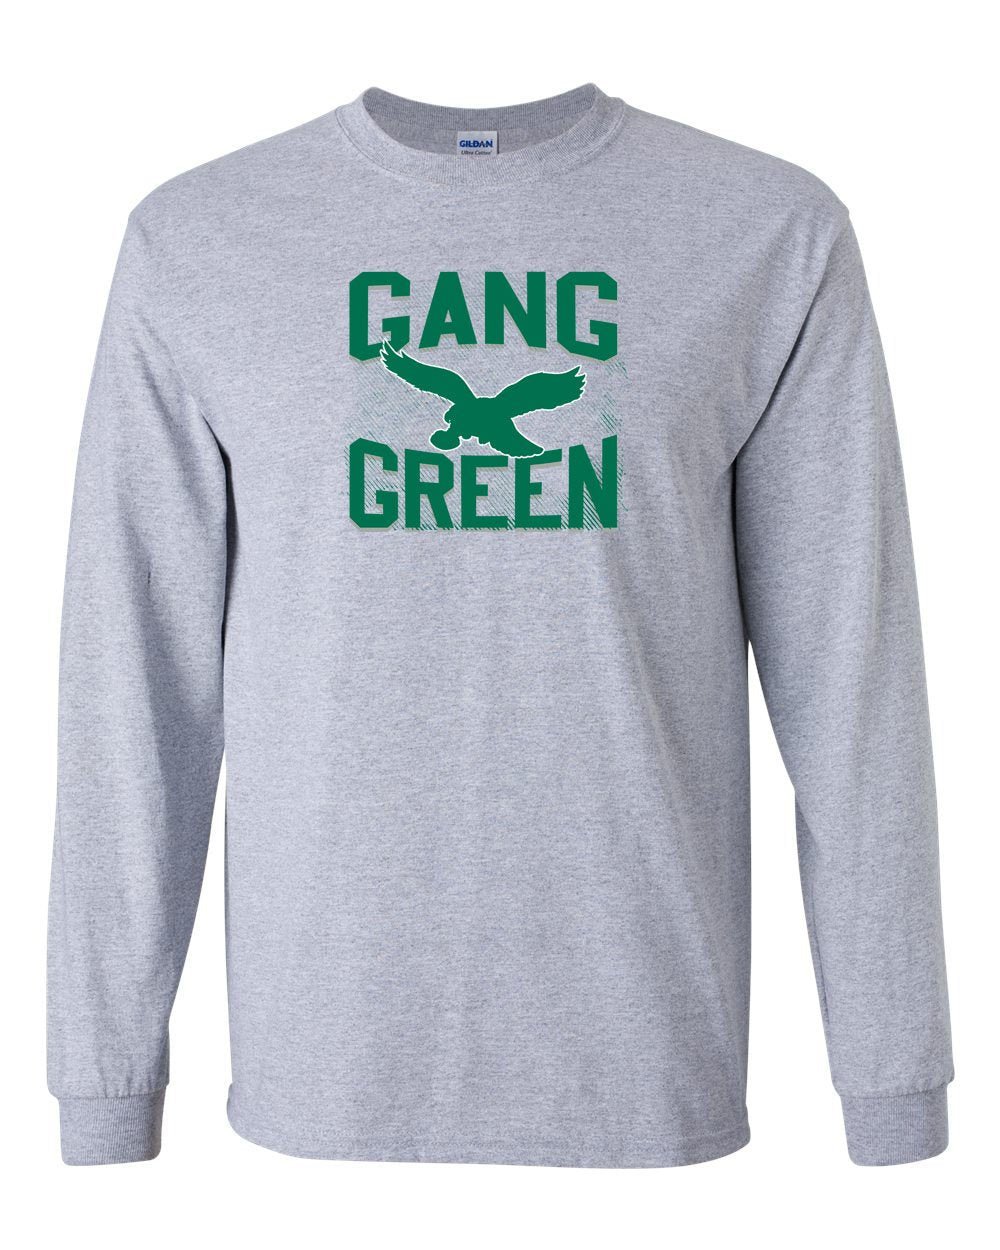 Gang Green MENS Long Sleeve Heavy Cotton T-Shirt